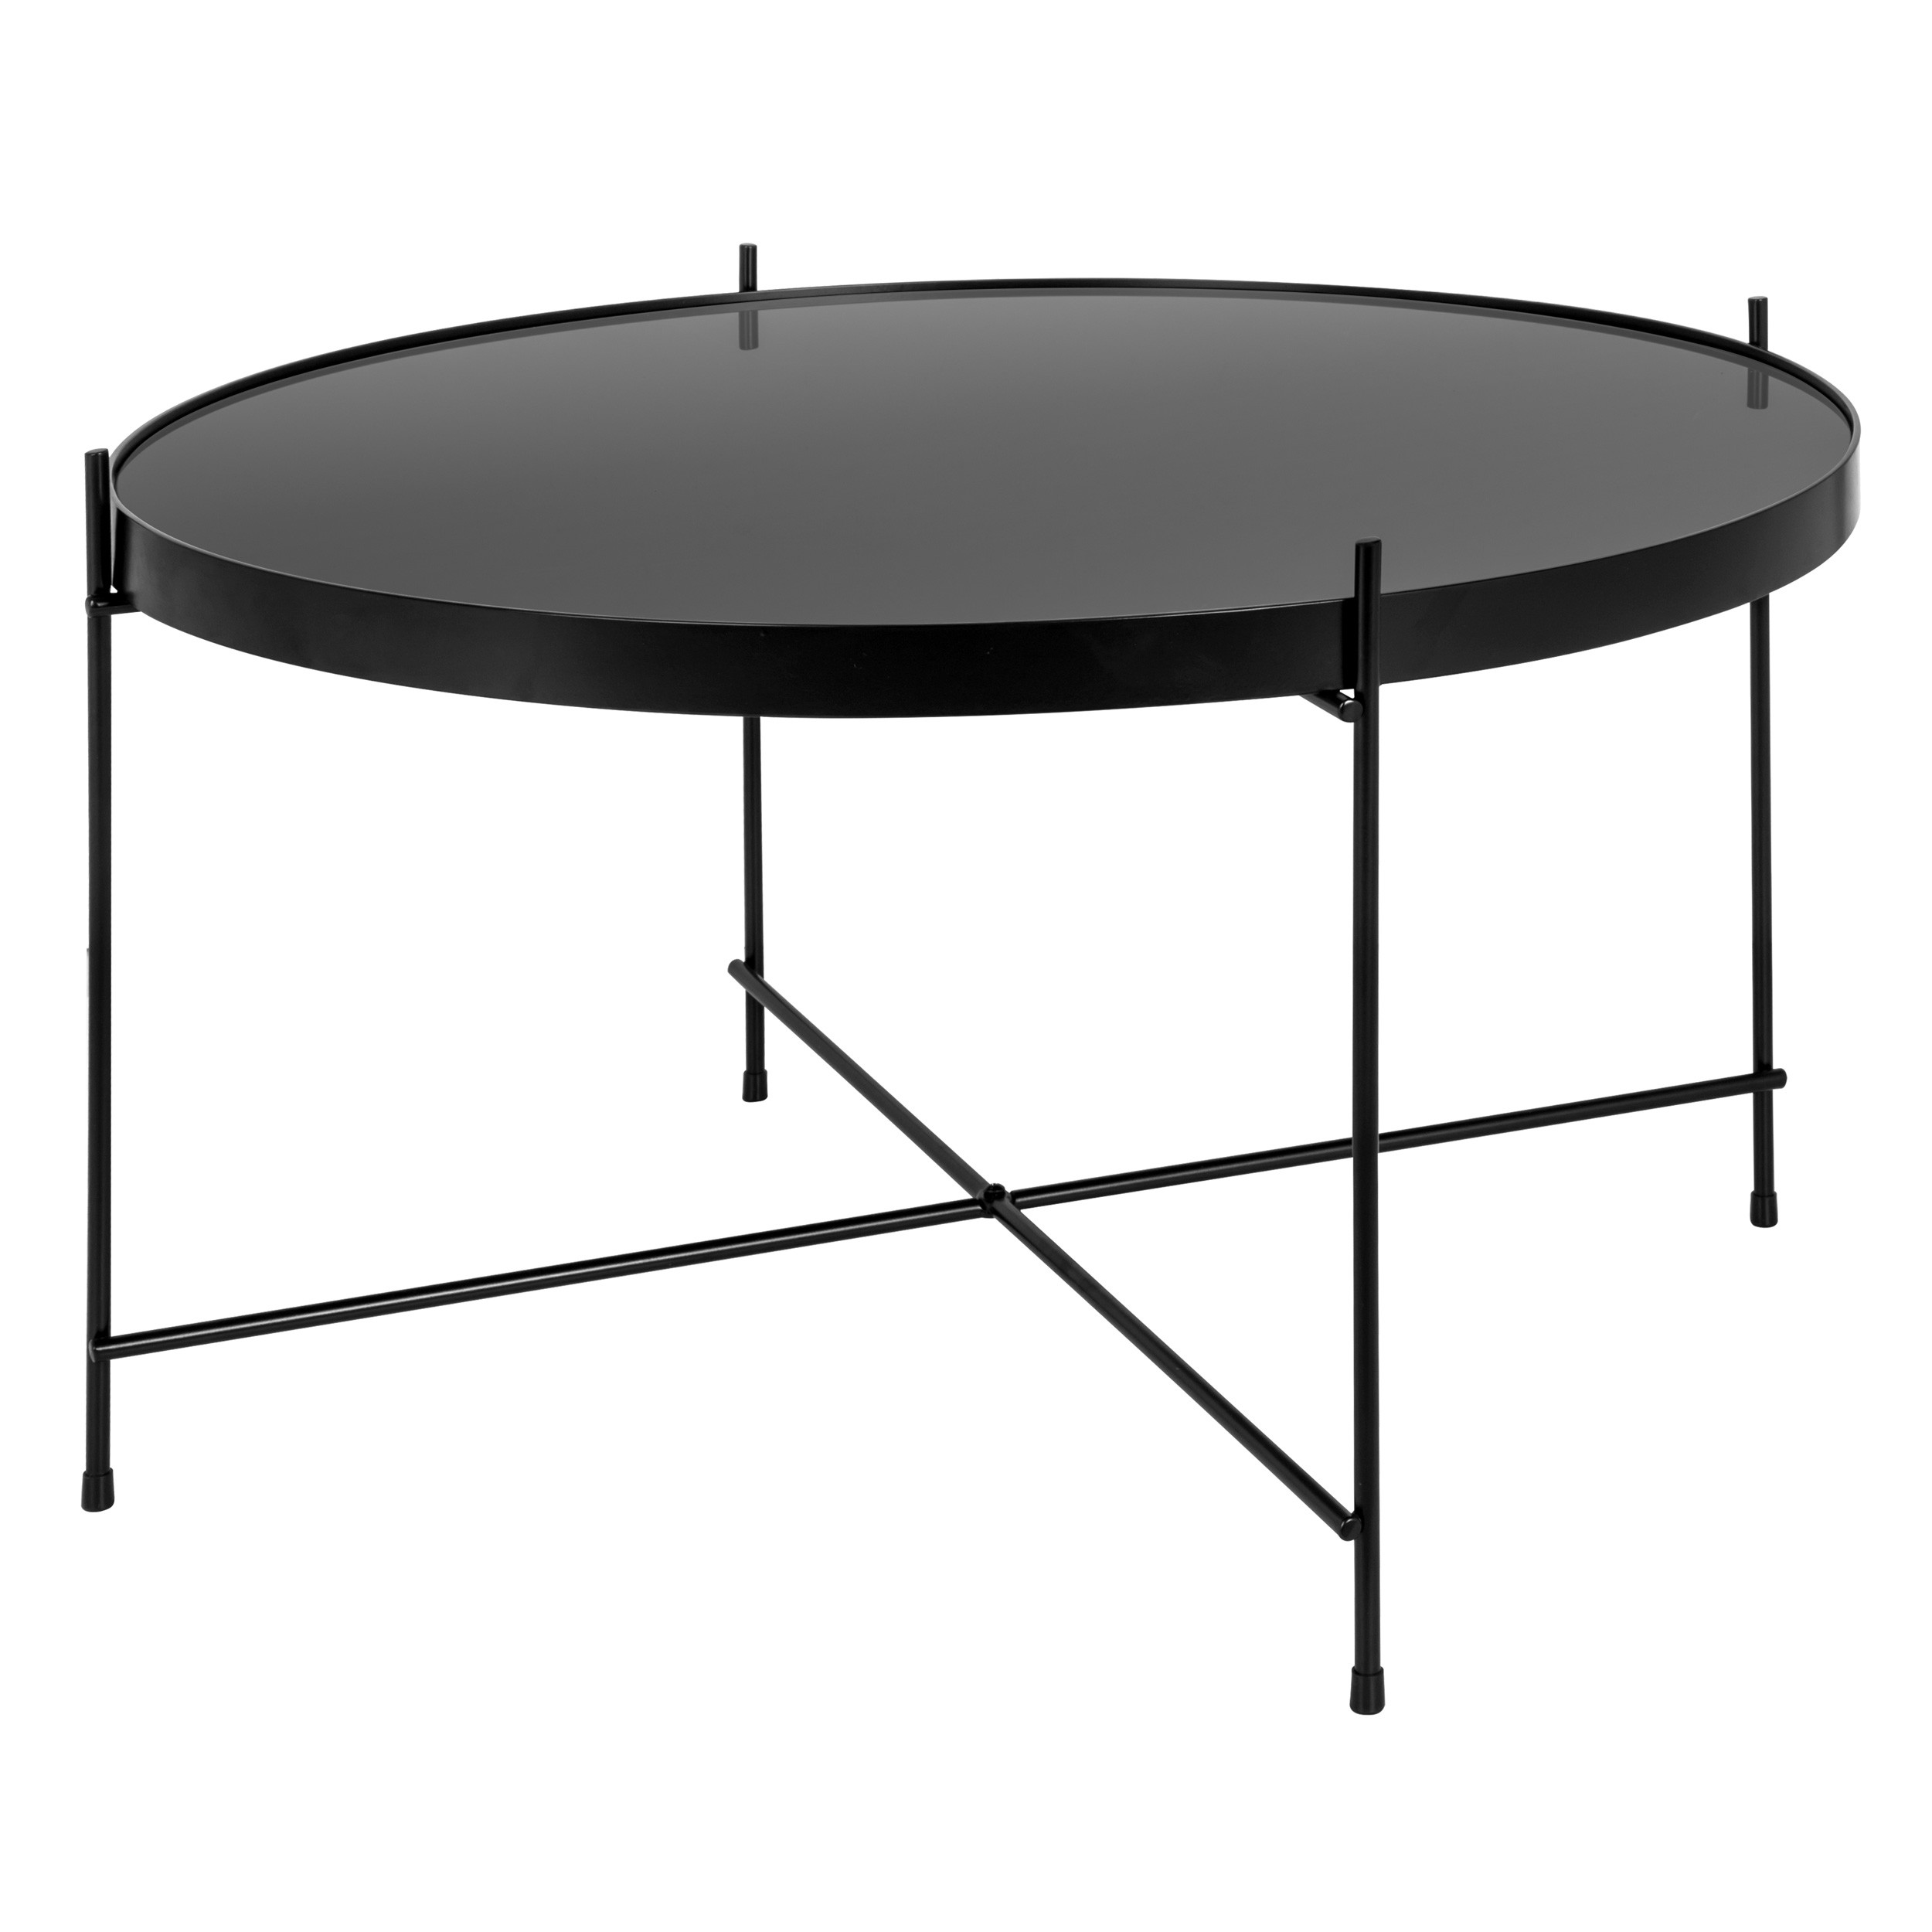 table basse ronde valdo noire m testez nos tables basses. Black Bedroom Furniture Sets. Home Design Ideas